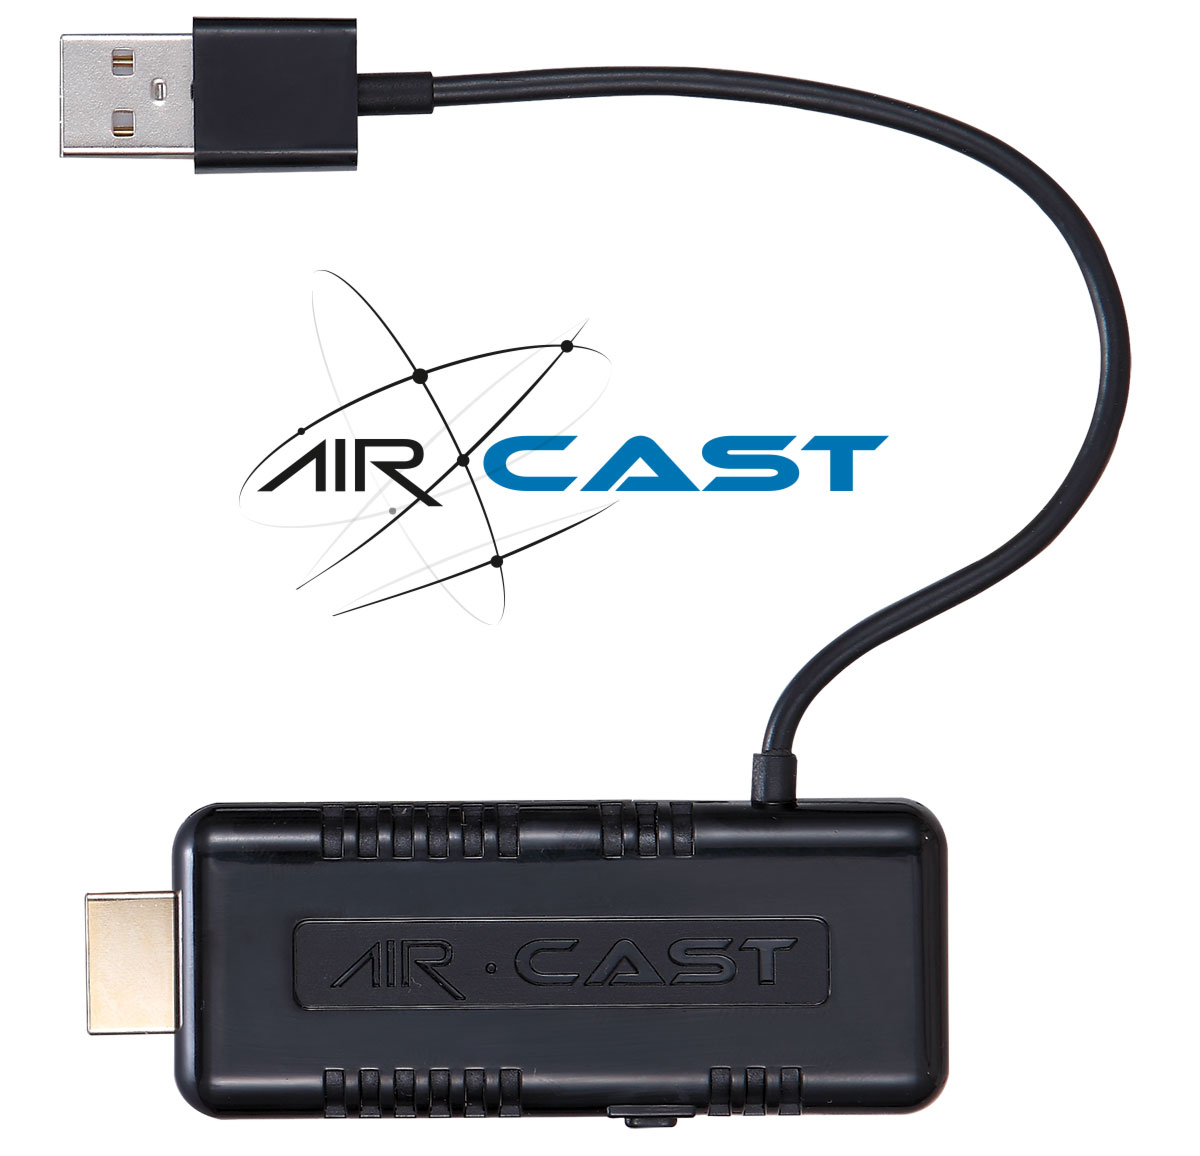 Farenheit AC-1 Wireless Mobile Link MHL Receiver with Requires USB 5 Volts Power